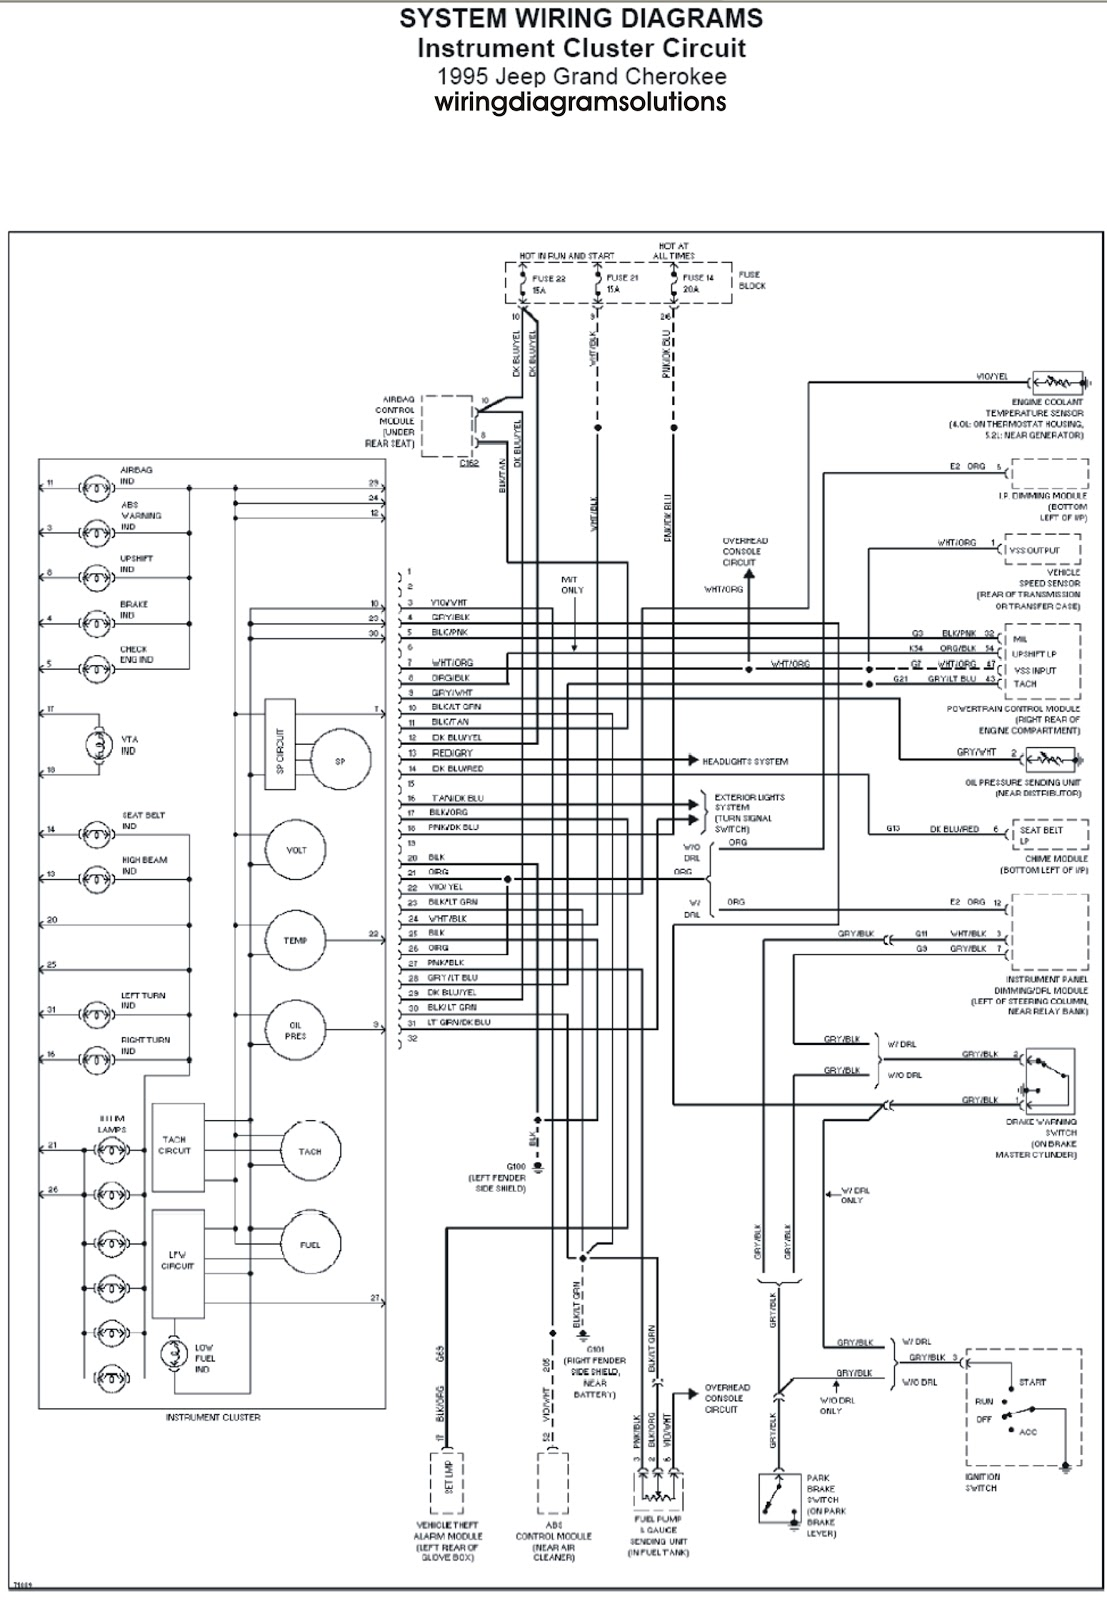 medium resolution of 1998 jeep 4 0 wiring schematic simple wiring diagram jeep grand cherokee 4 0 engine 1999 grand